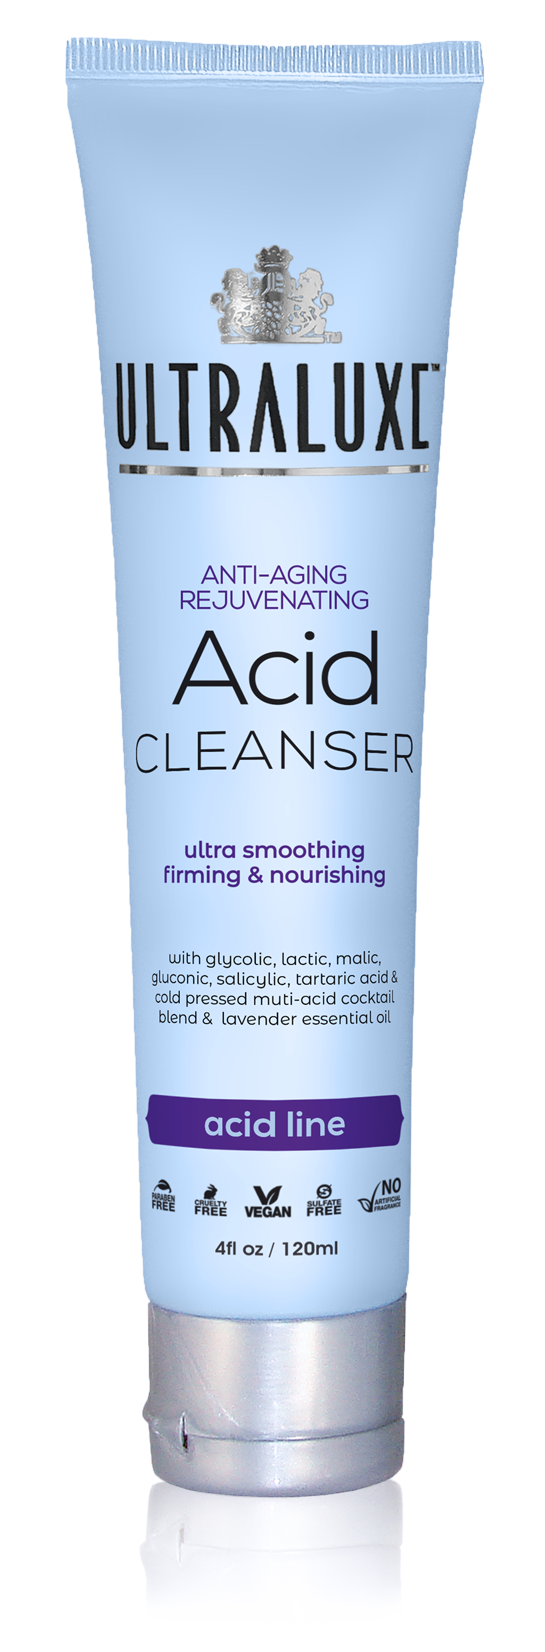 Anti-Aging Rejuvenating Acid Cleanser